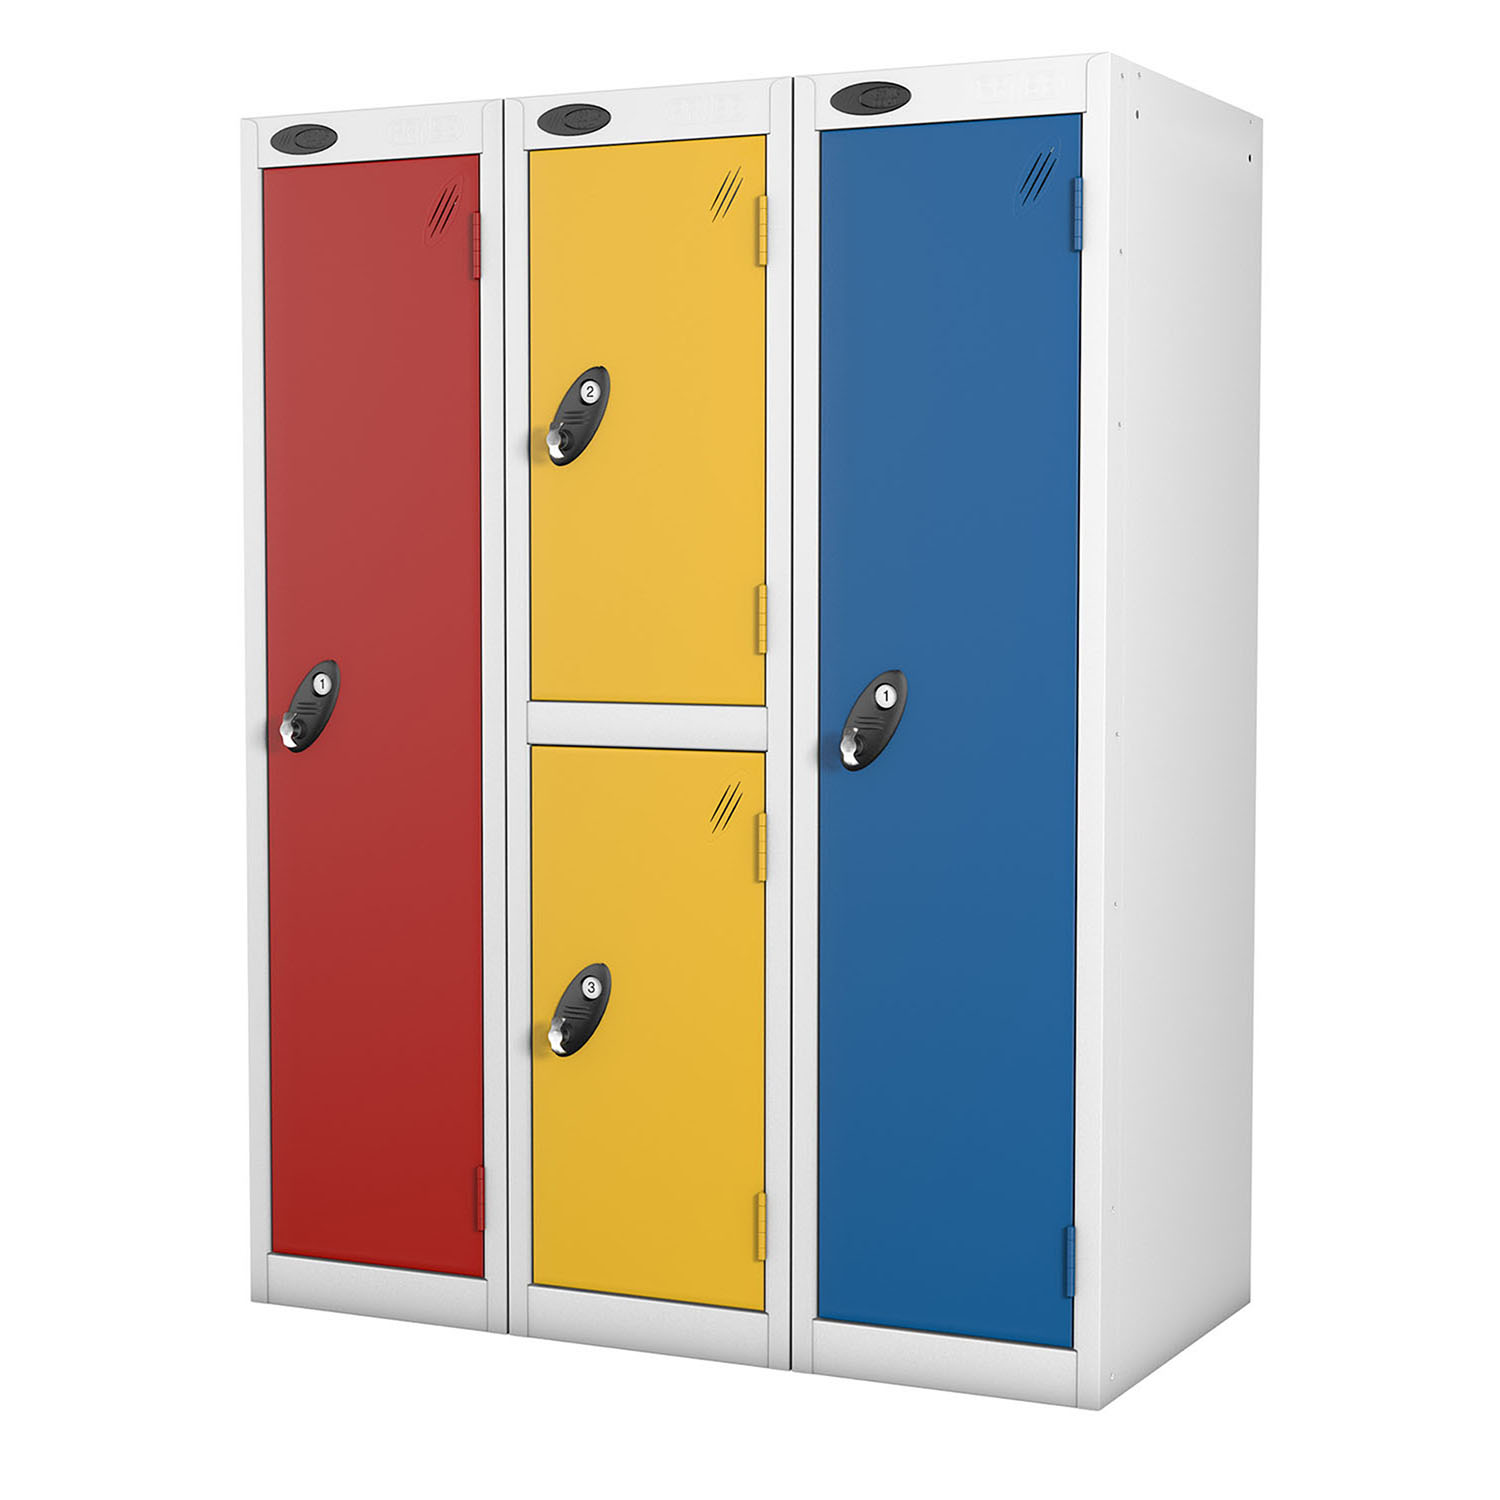 Probe 4 doors low locker in yellow, red and blue colours